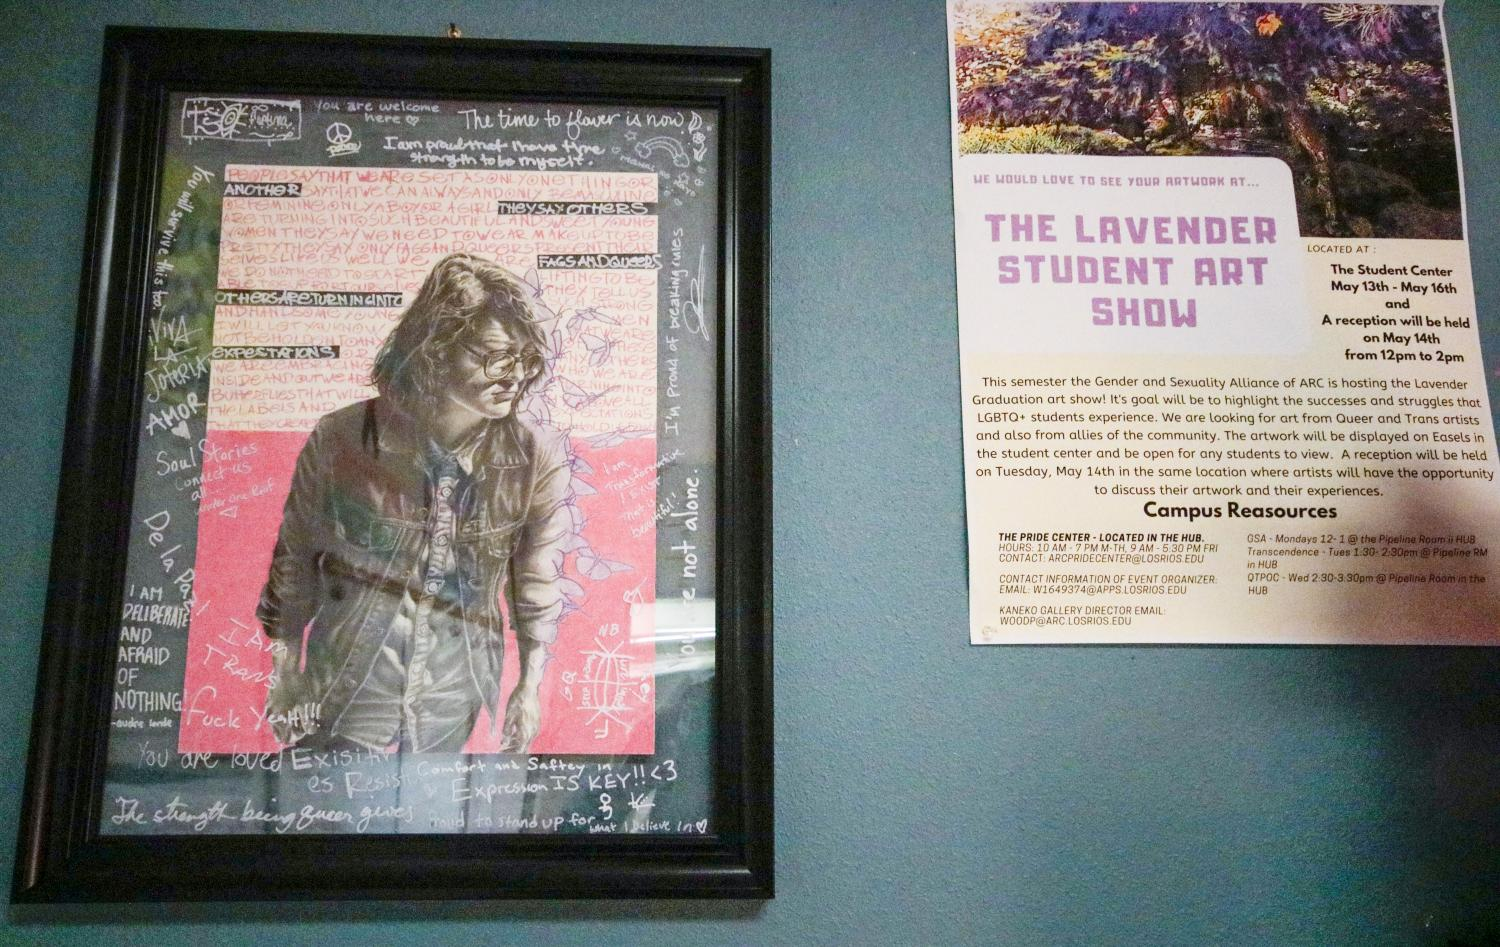 Ryan Sunzeri's artwork hangs in the Pride Center at American River College after winning last year's Lavender Art Show. The Lavender Art Show highlights art from ARC's LGBTQ+ students and faculty and will be held on Feb. 24-26 in the Student Center. (Photo by Oden Taylor)